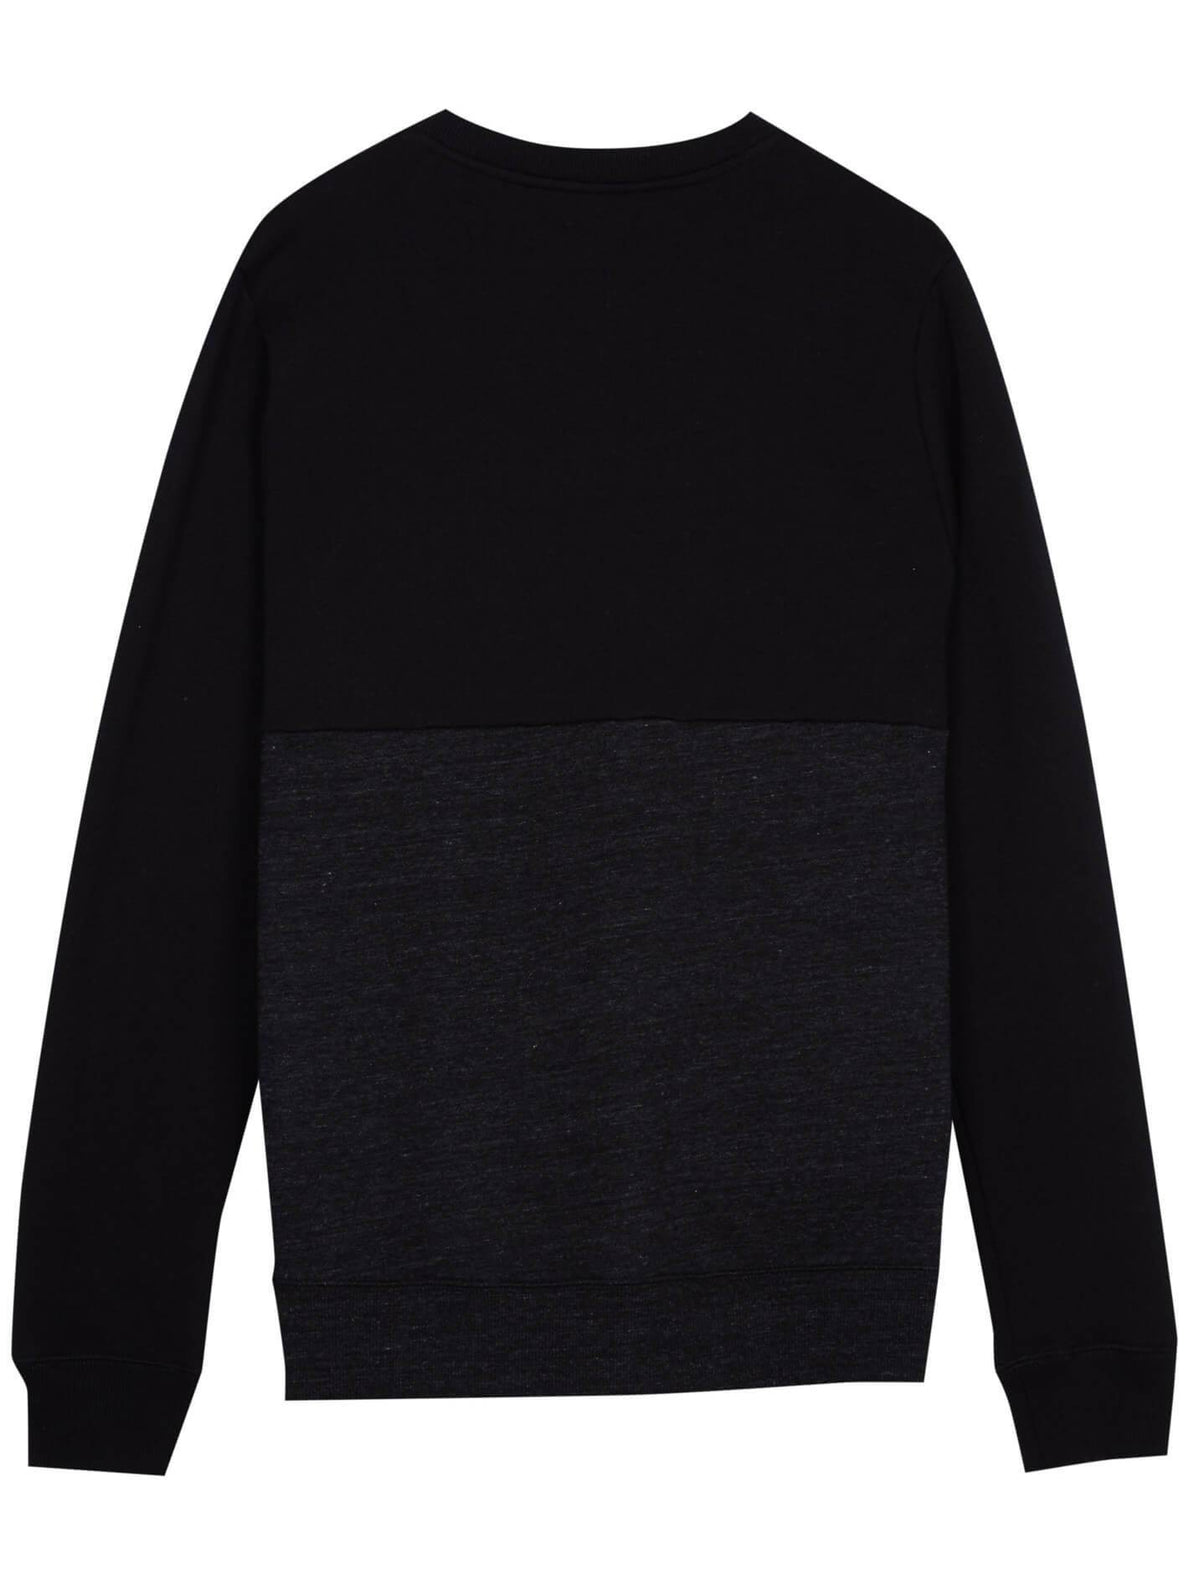 Single Stone Div Sweaters - Sulfur Black (Niňo)